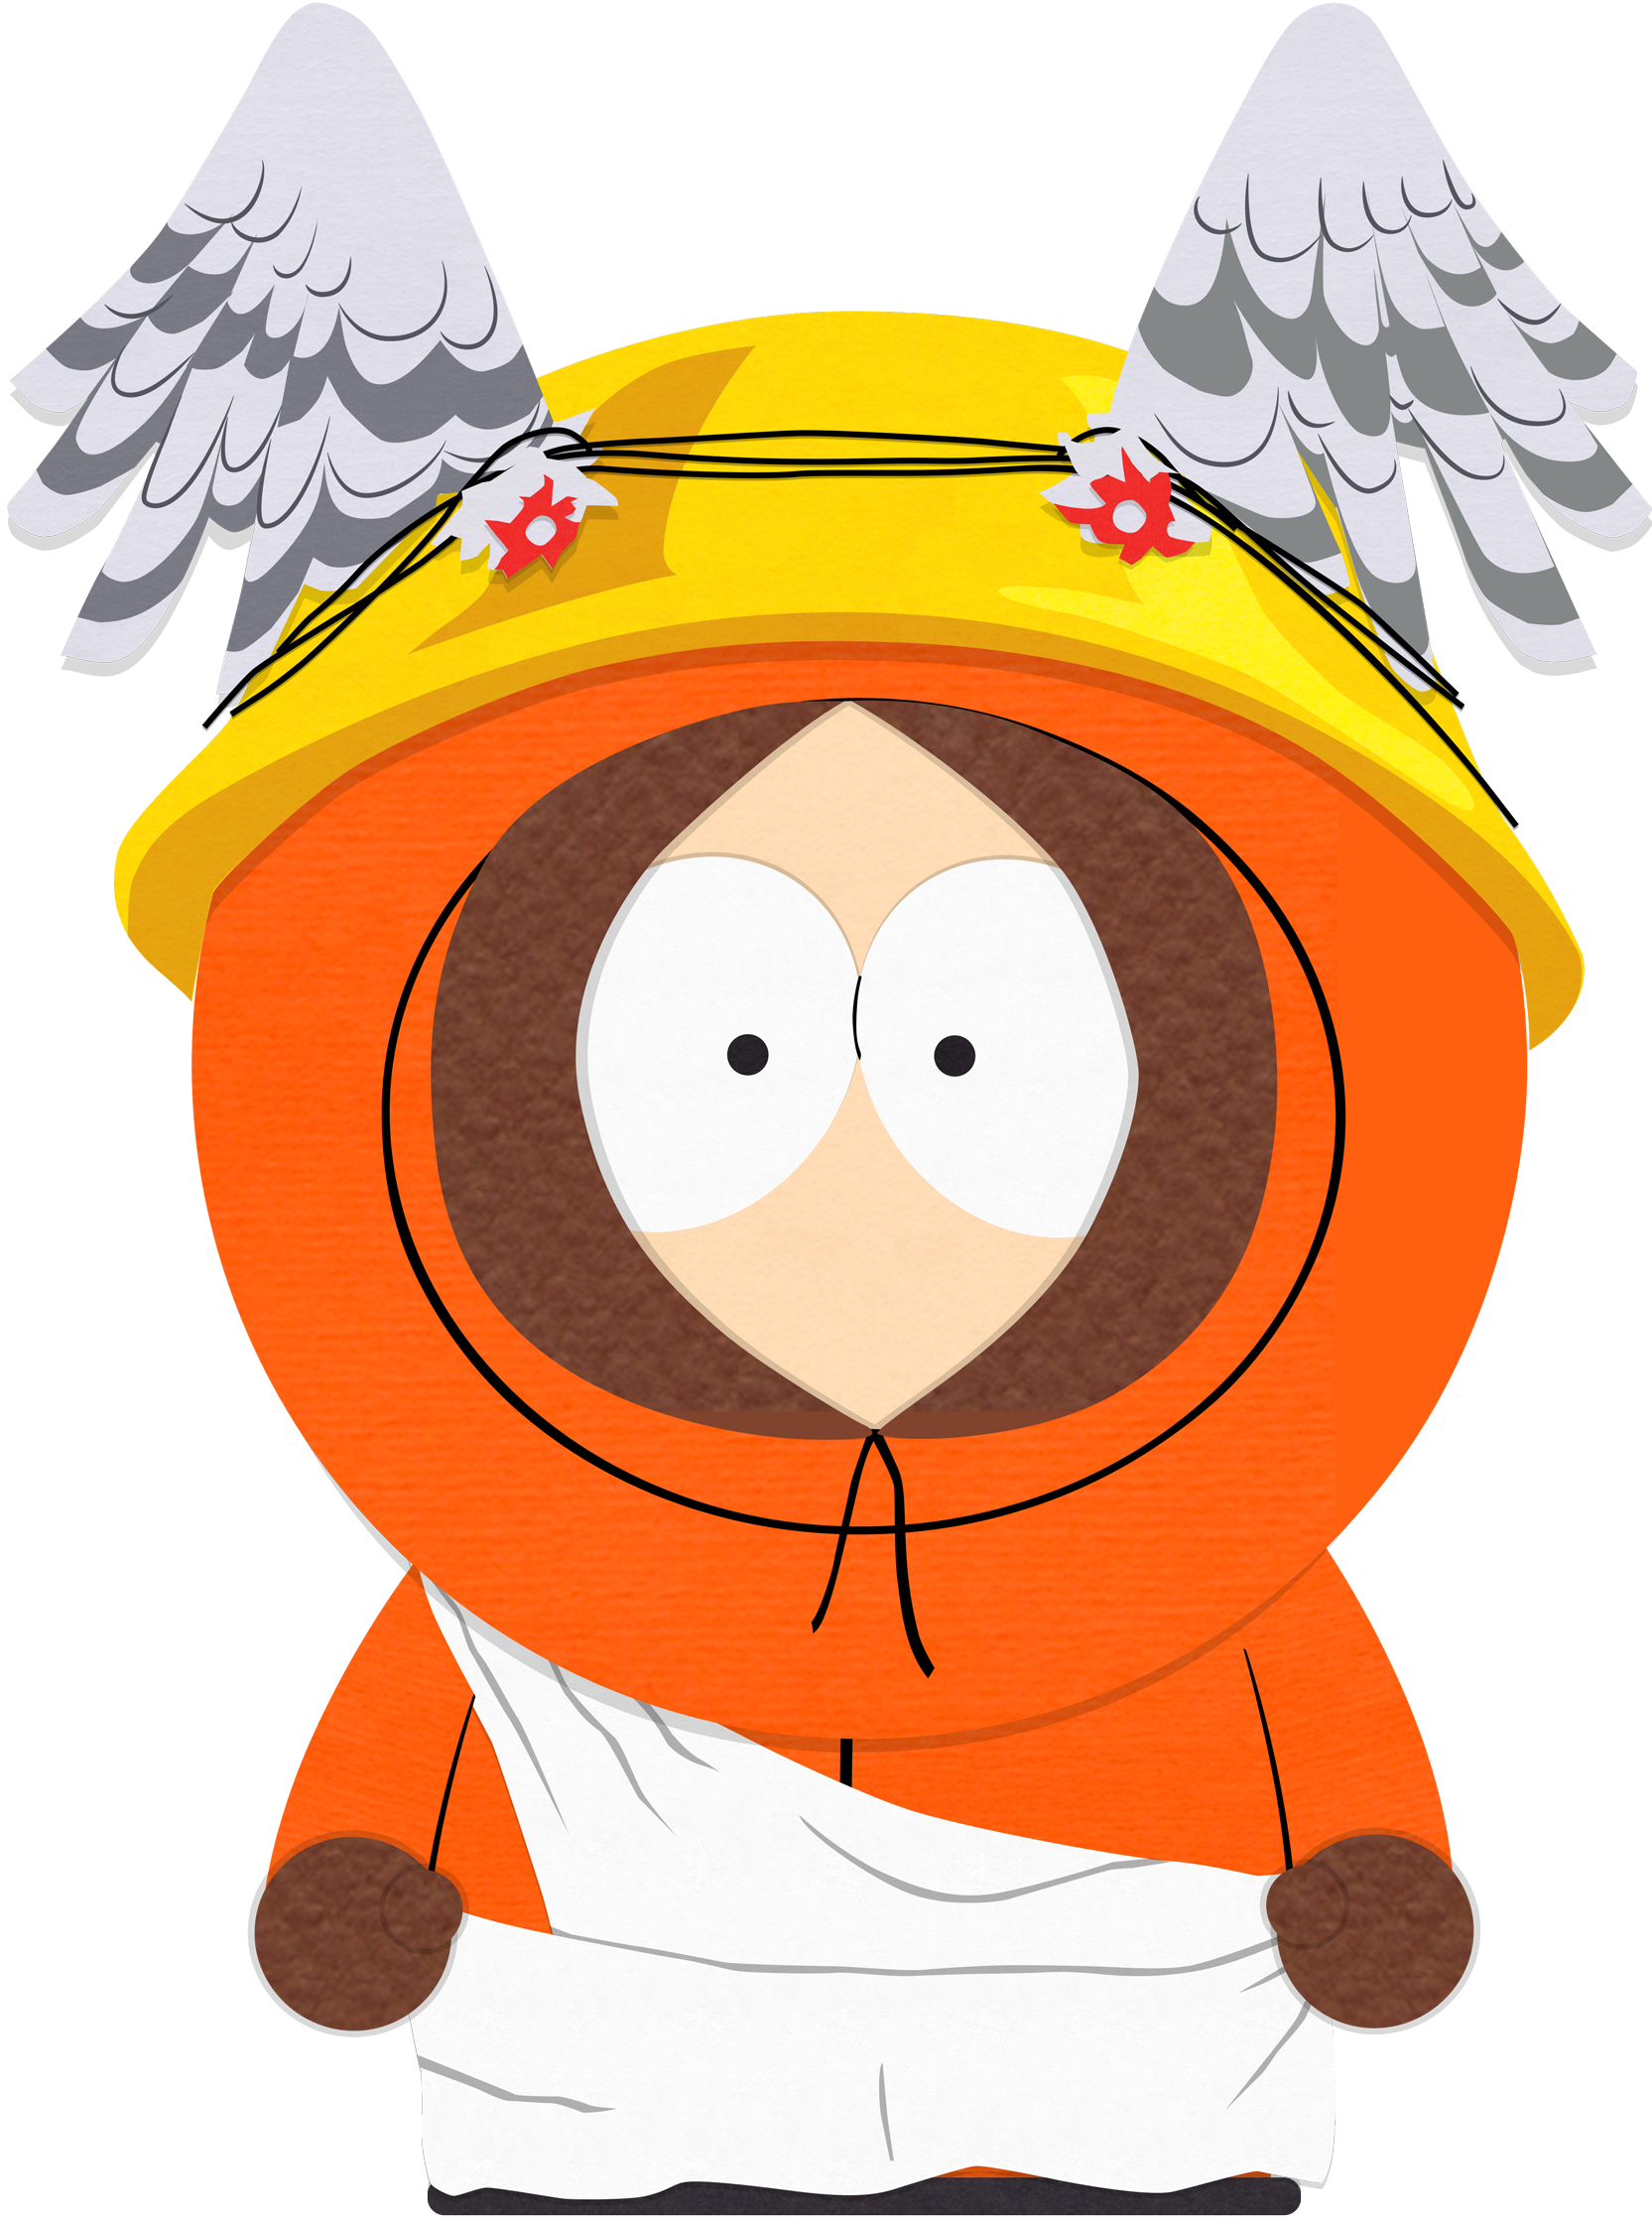 Image hermes south park archives fandom powered by wikia - Pics of kenny from south park ...